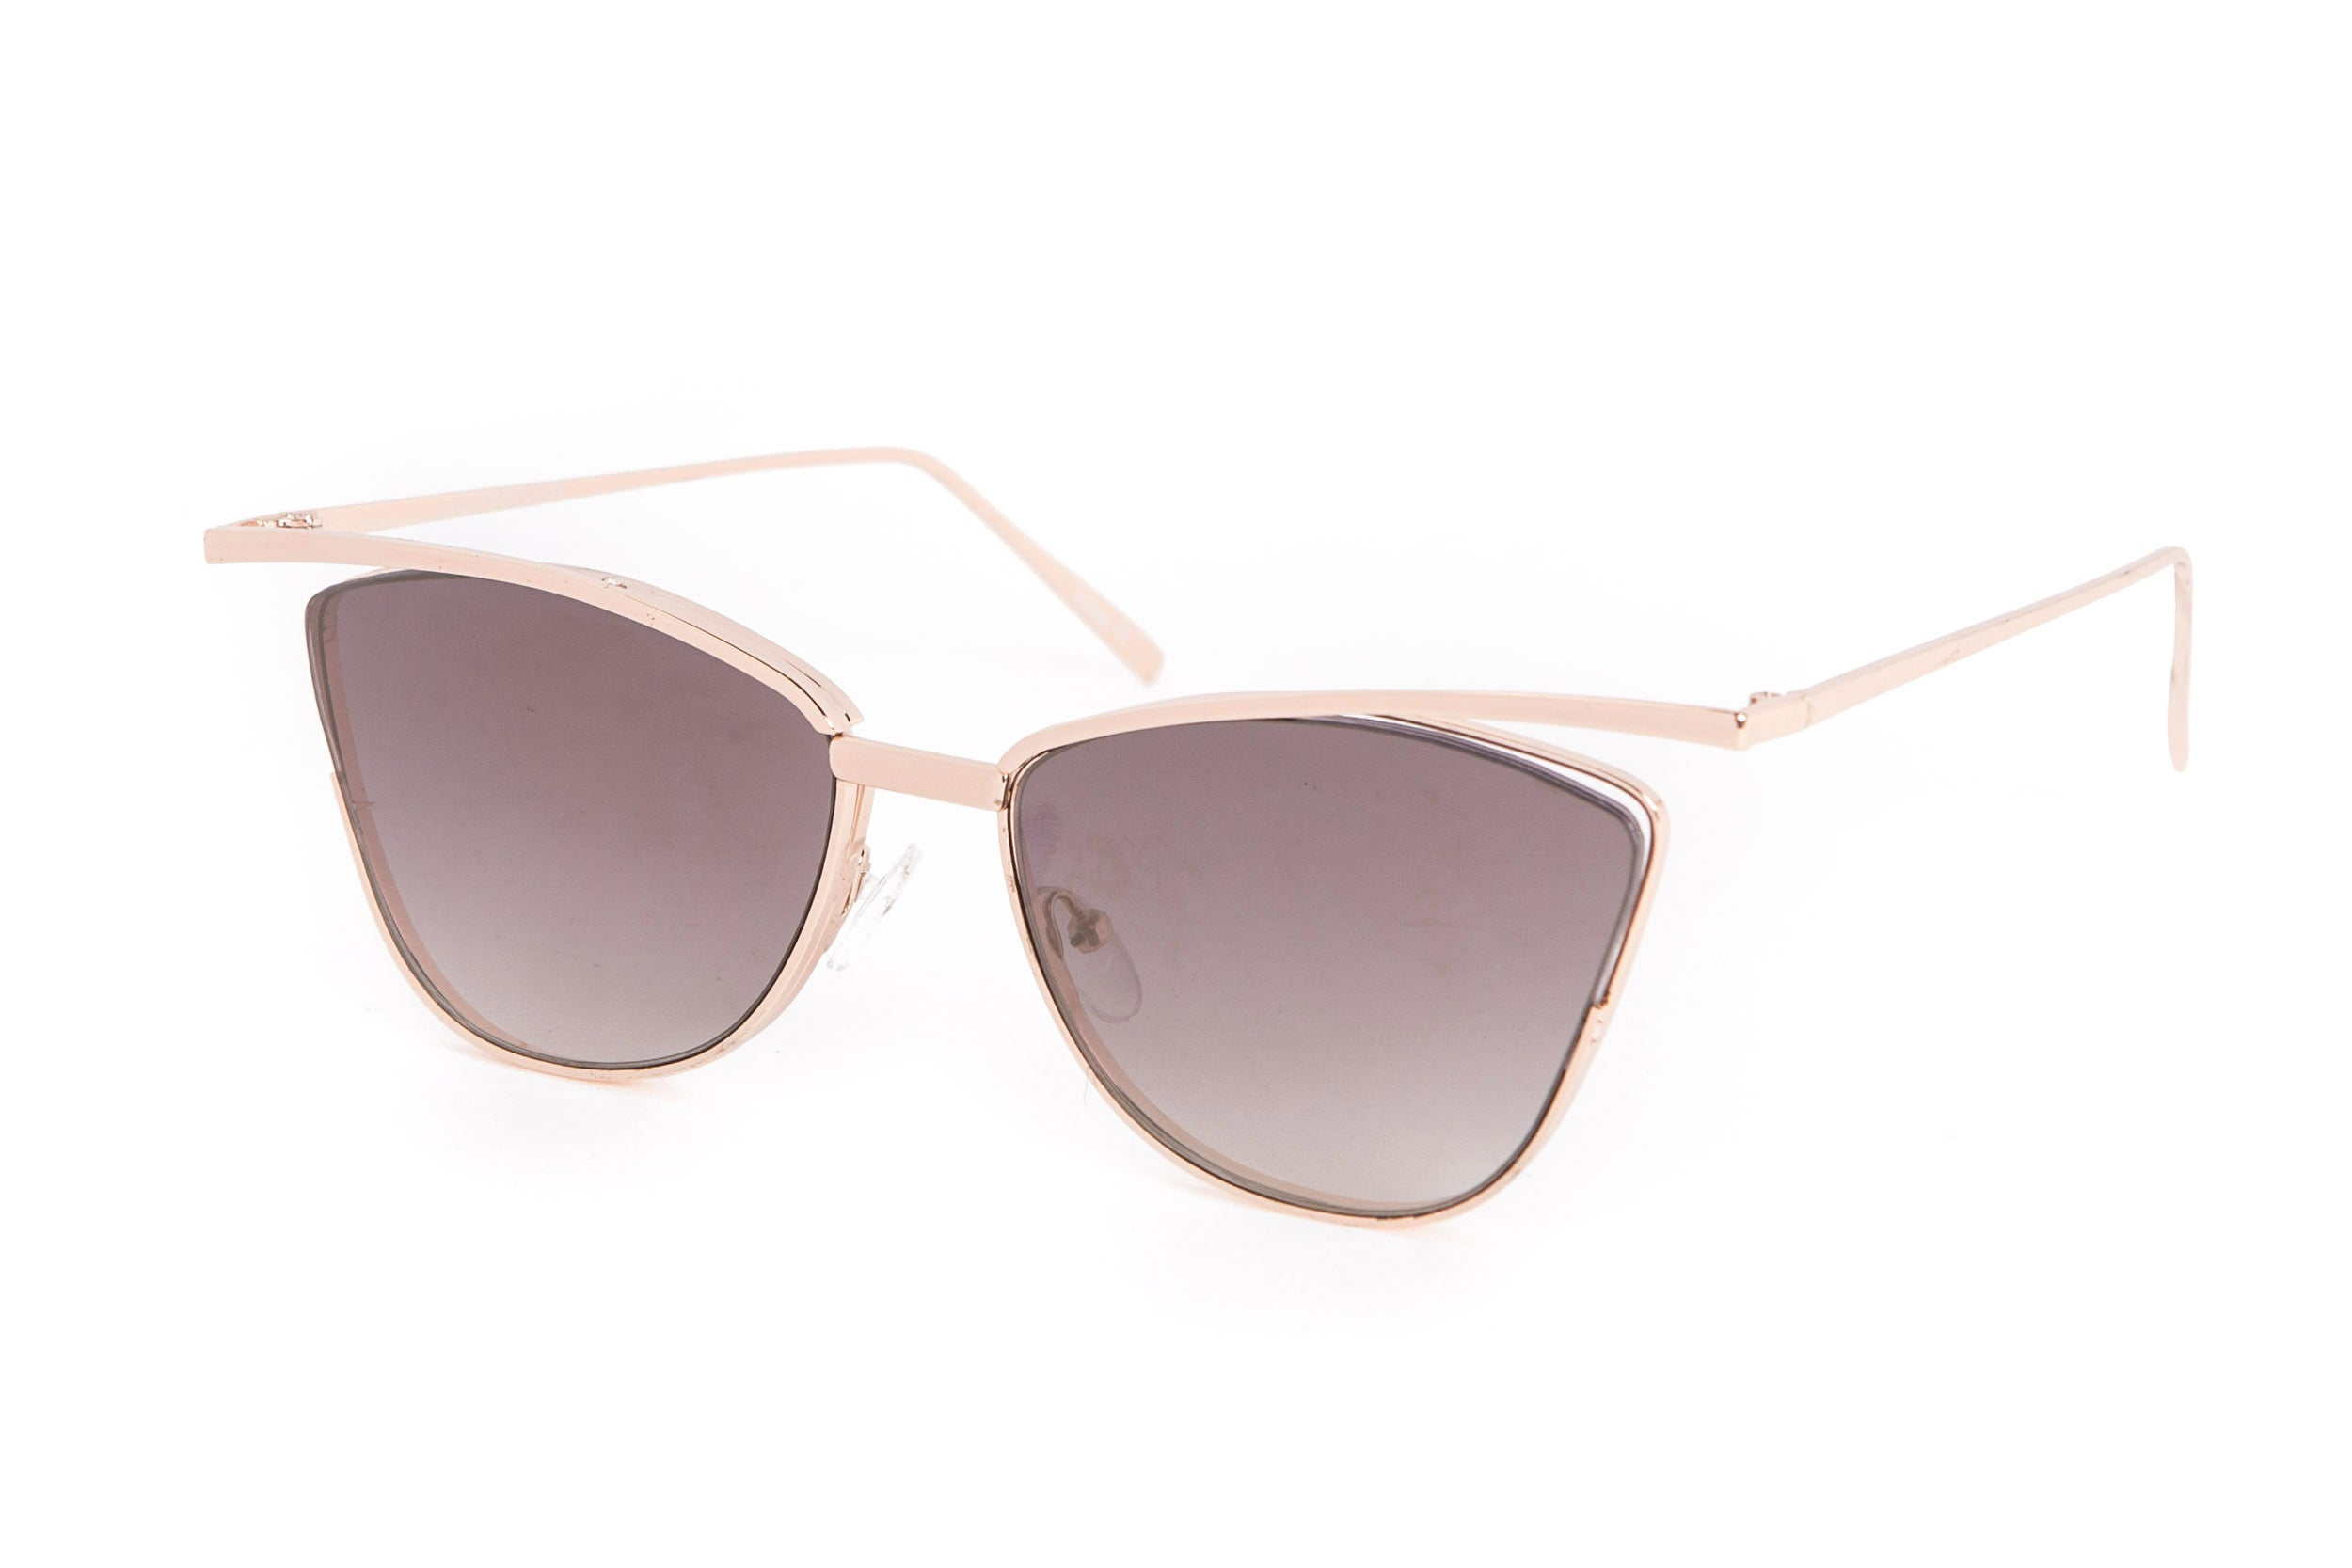 Private Eye Sunglasses